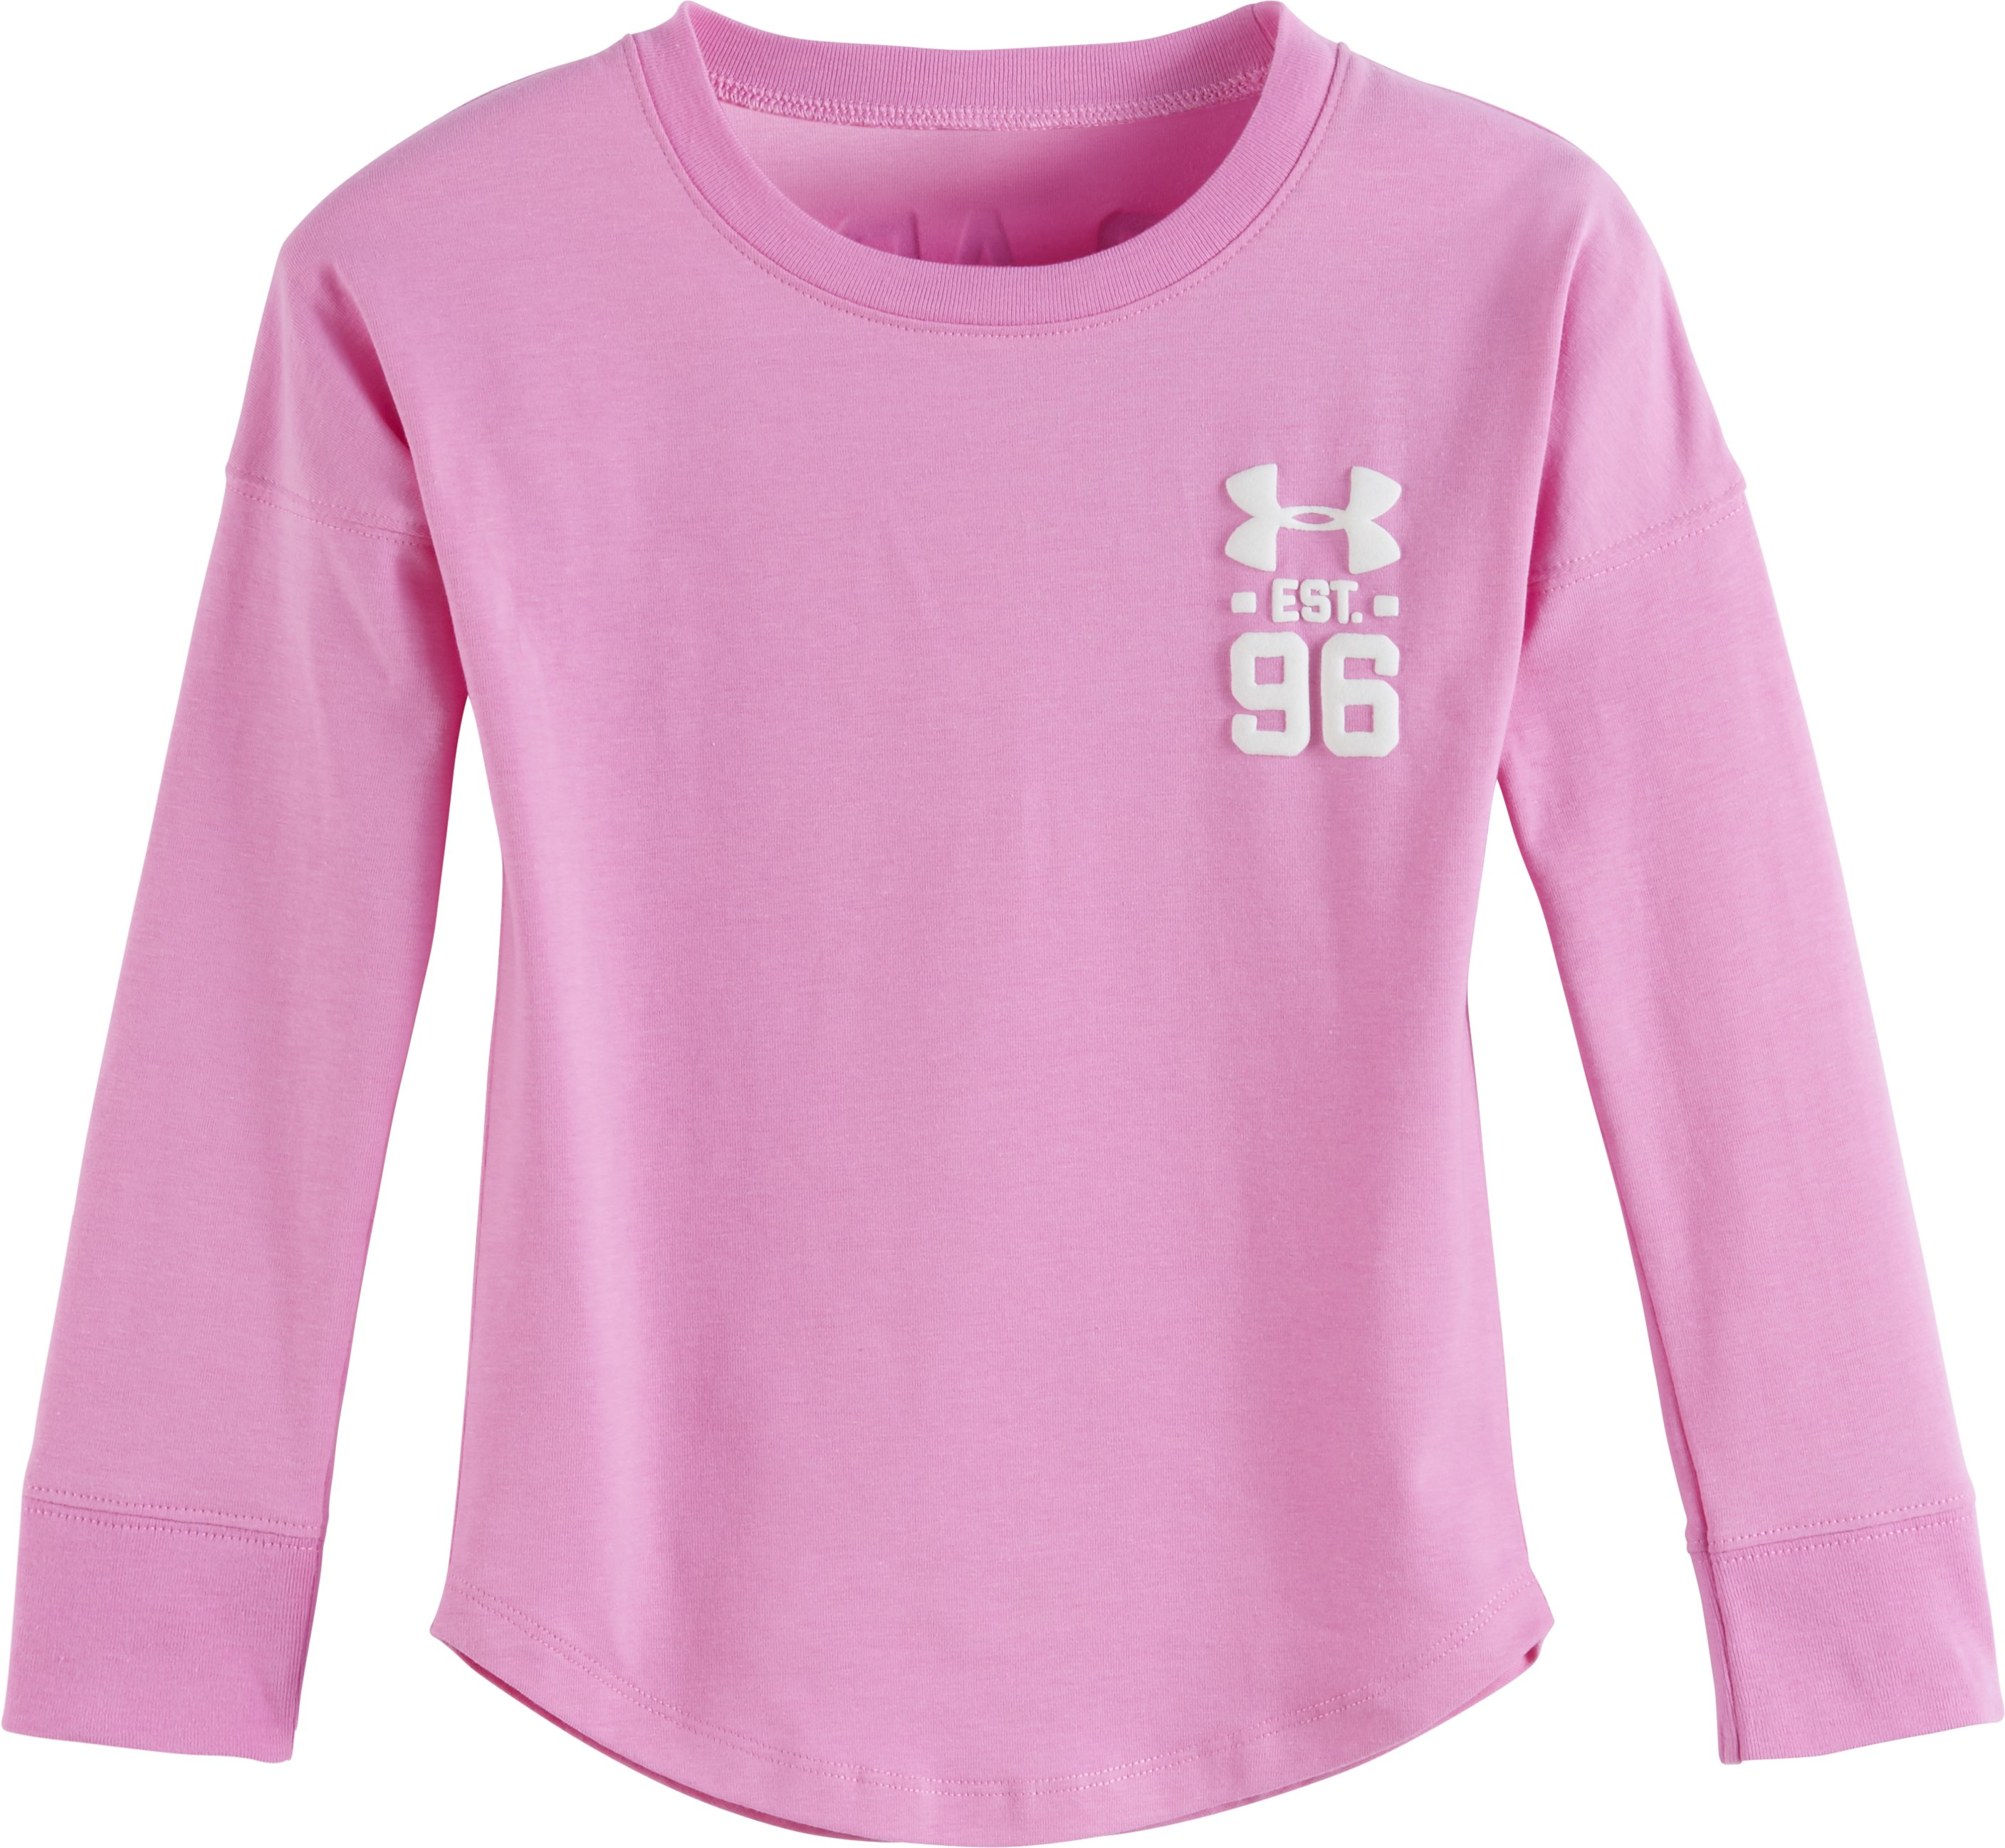 Girls' Toddler UA Varsity Long Sleeve, VERVE VIOLET